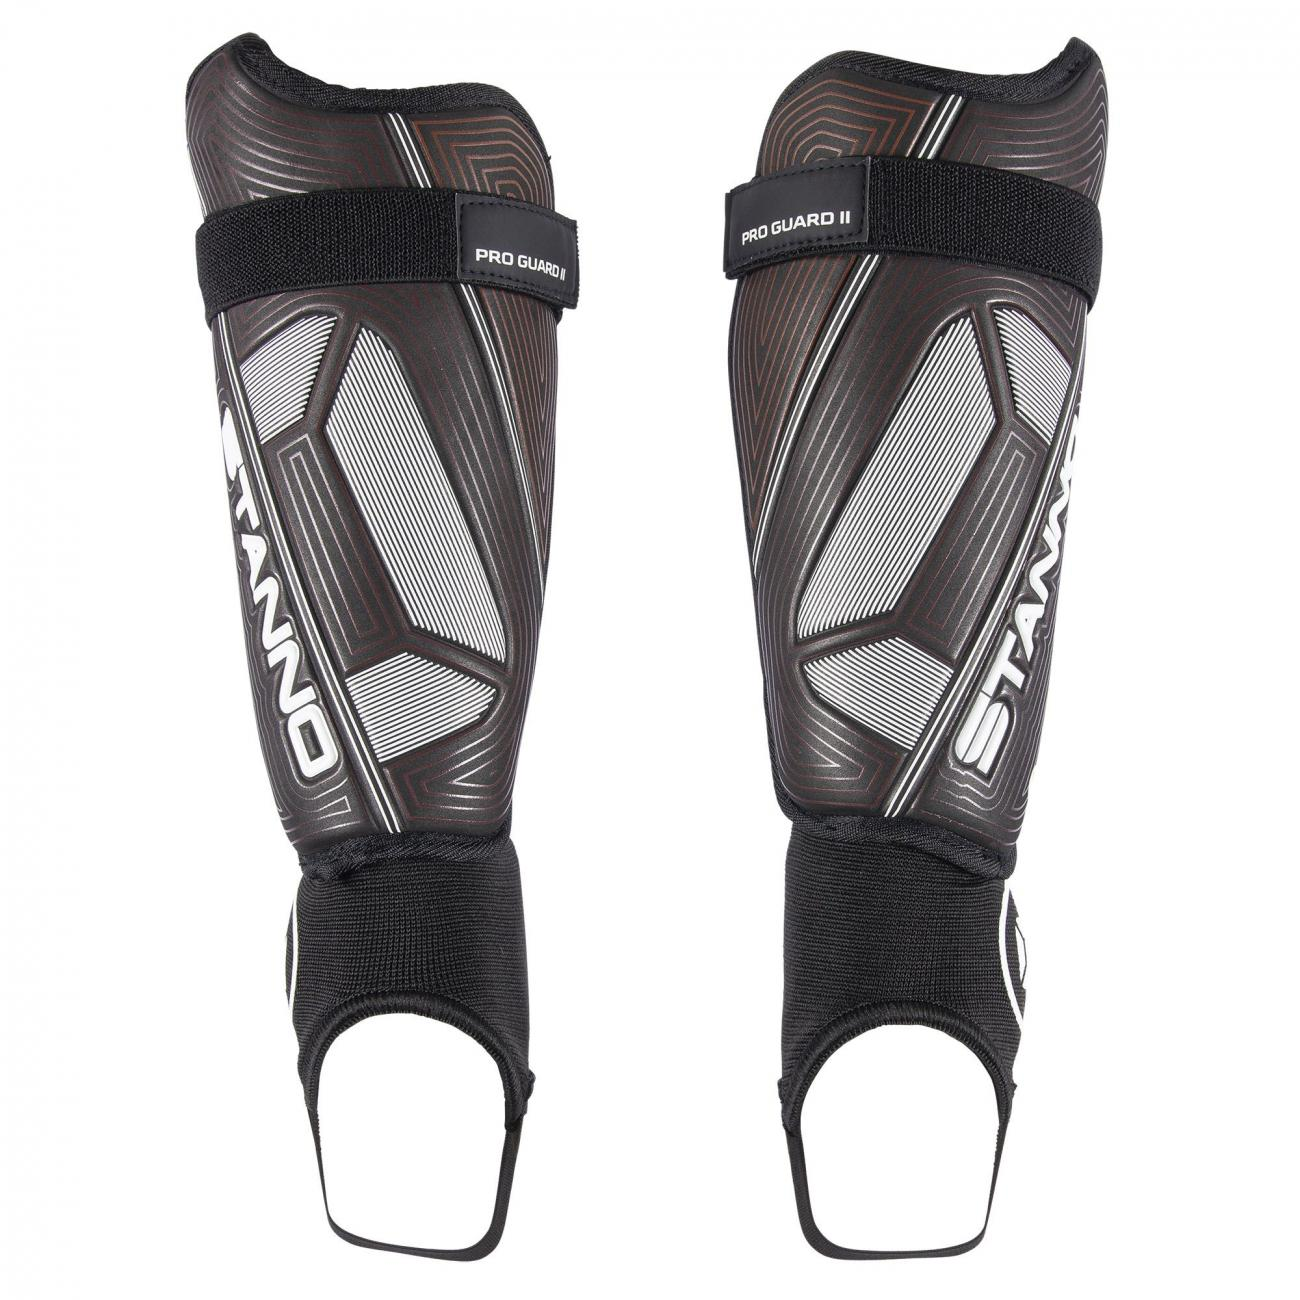 Stanno Pro Guard II - Black/Brown/White